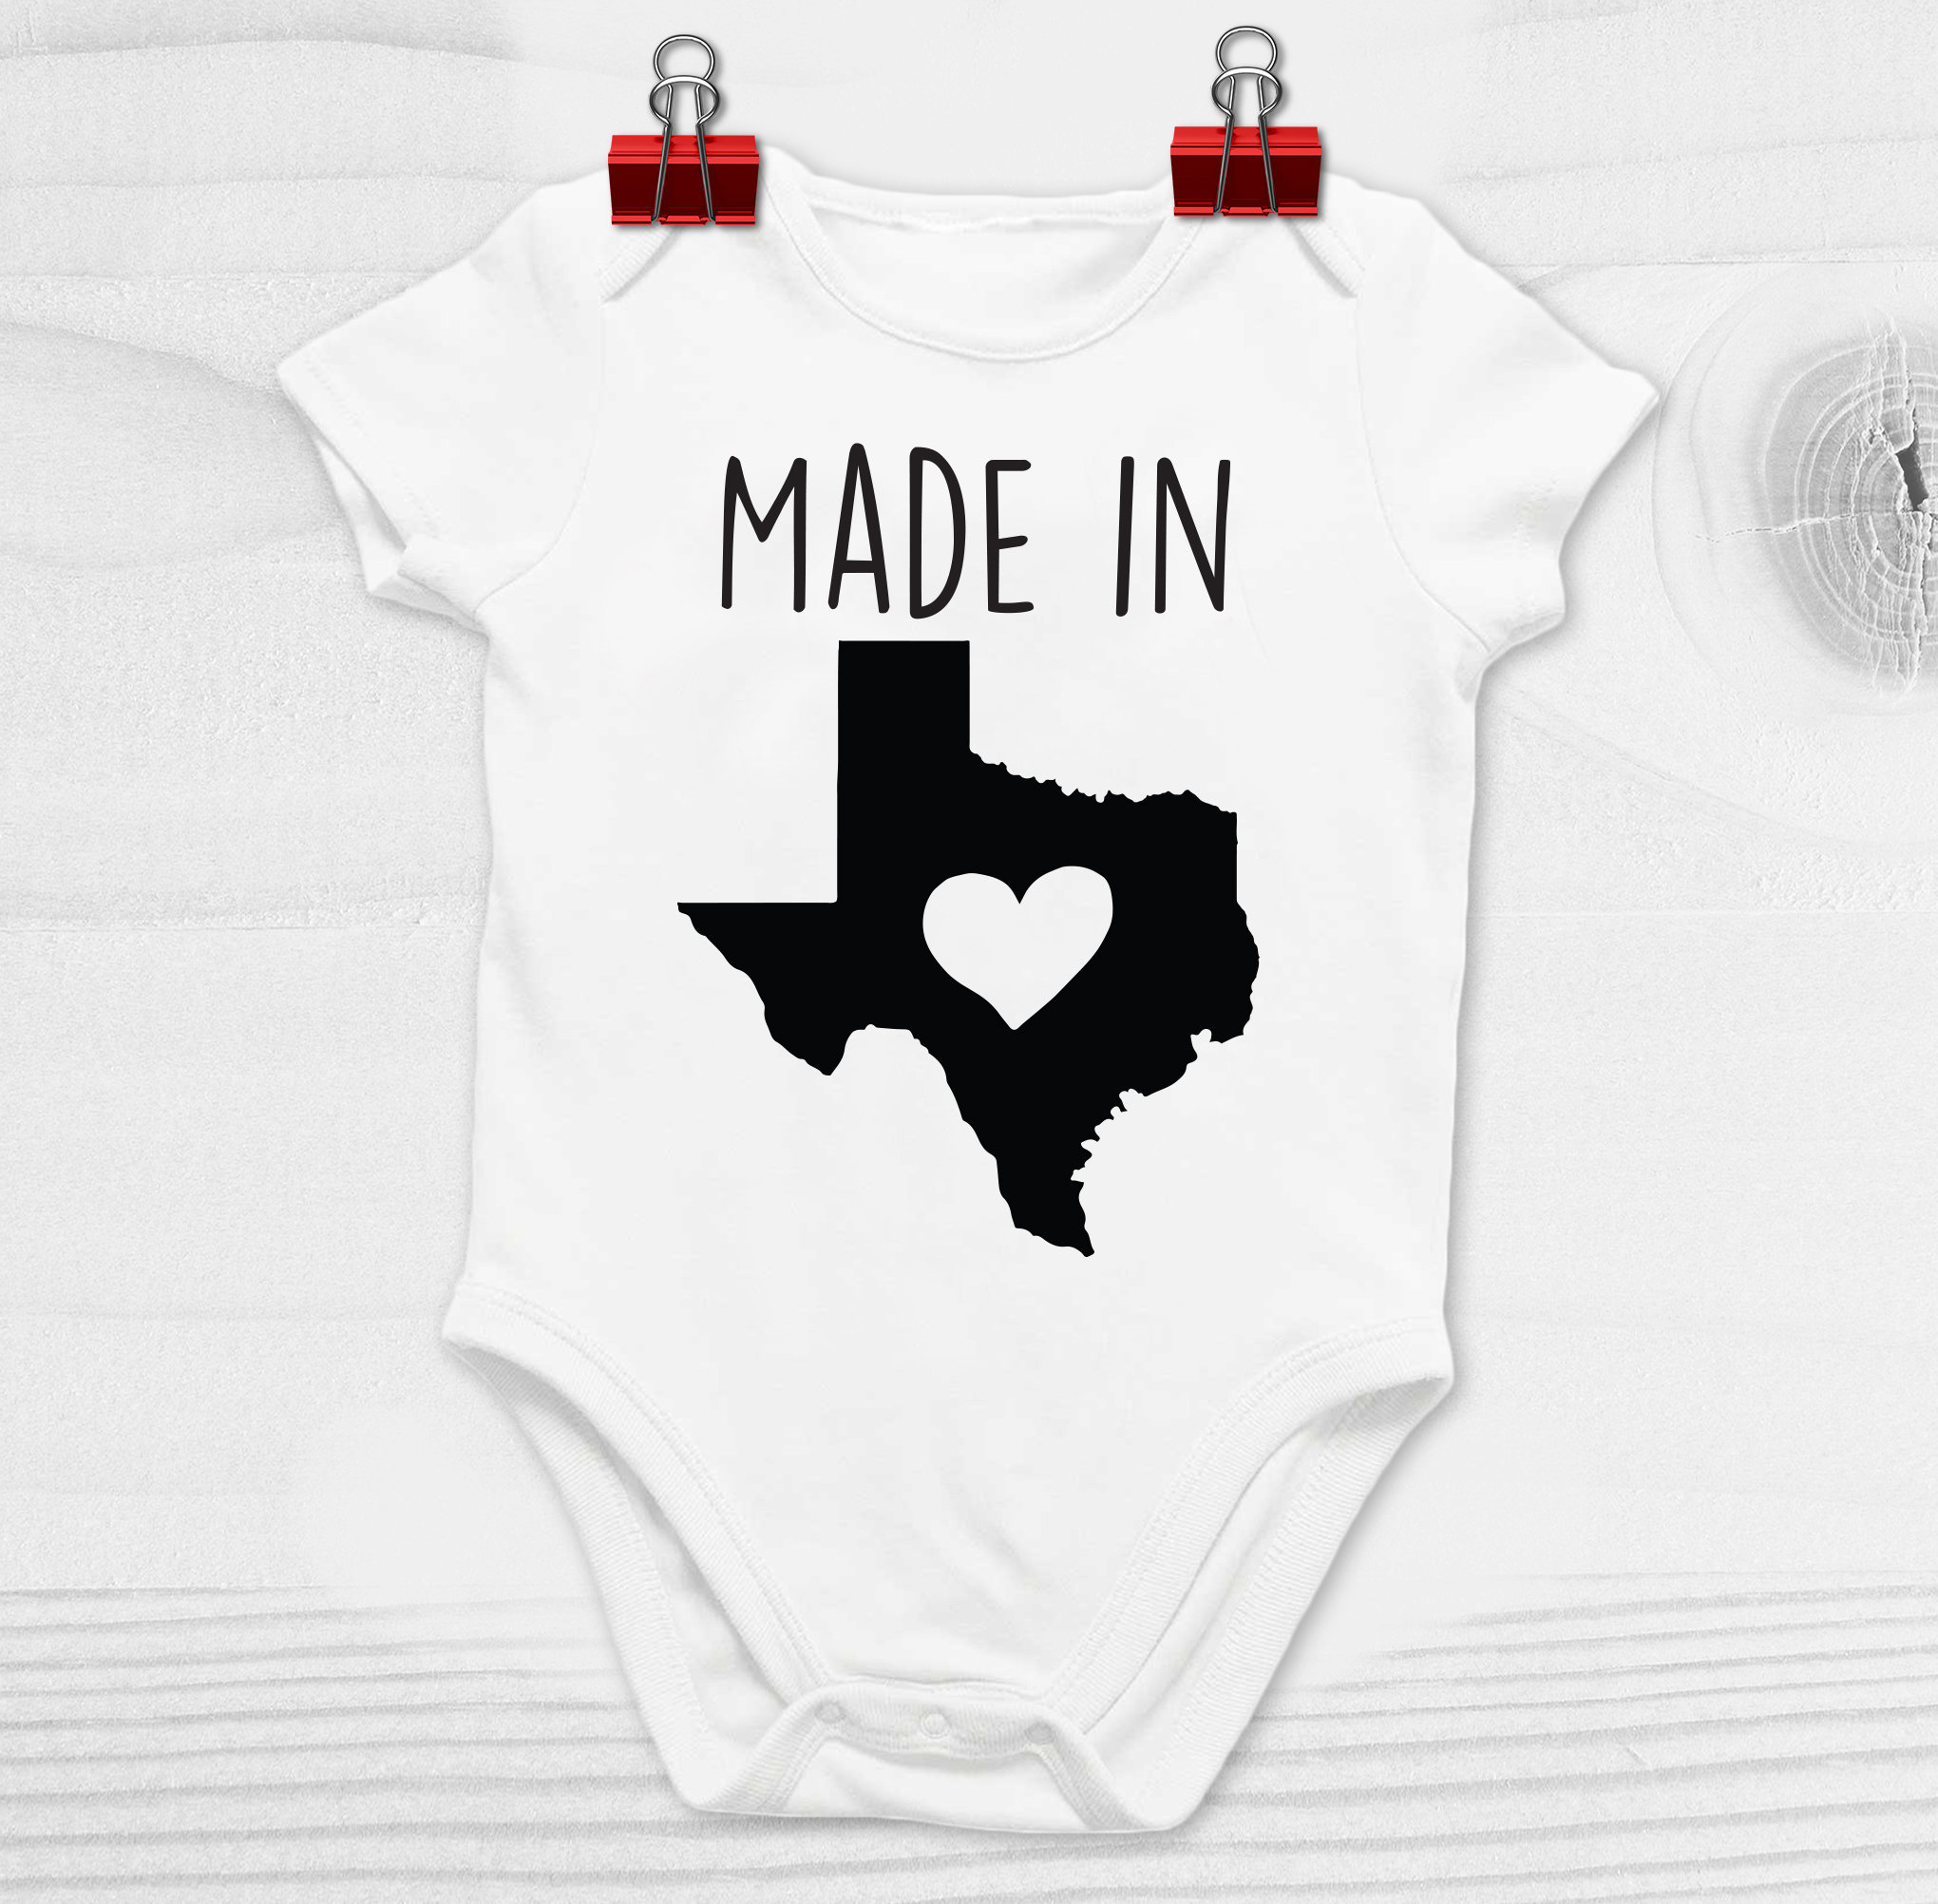 Made in Texas Baby Shirt